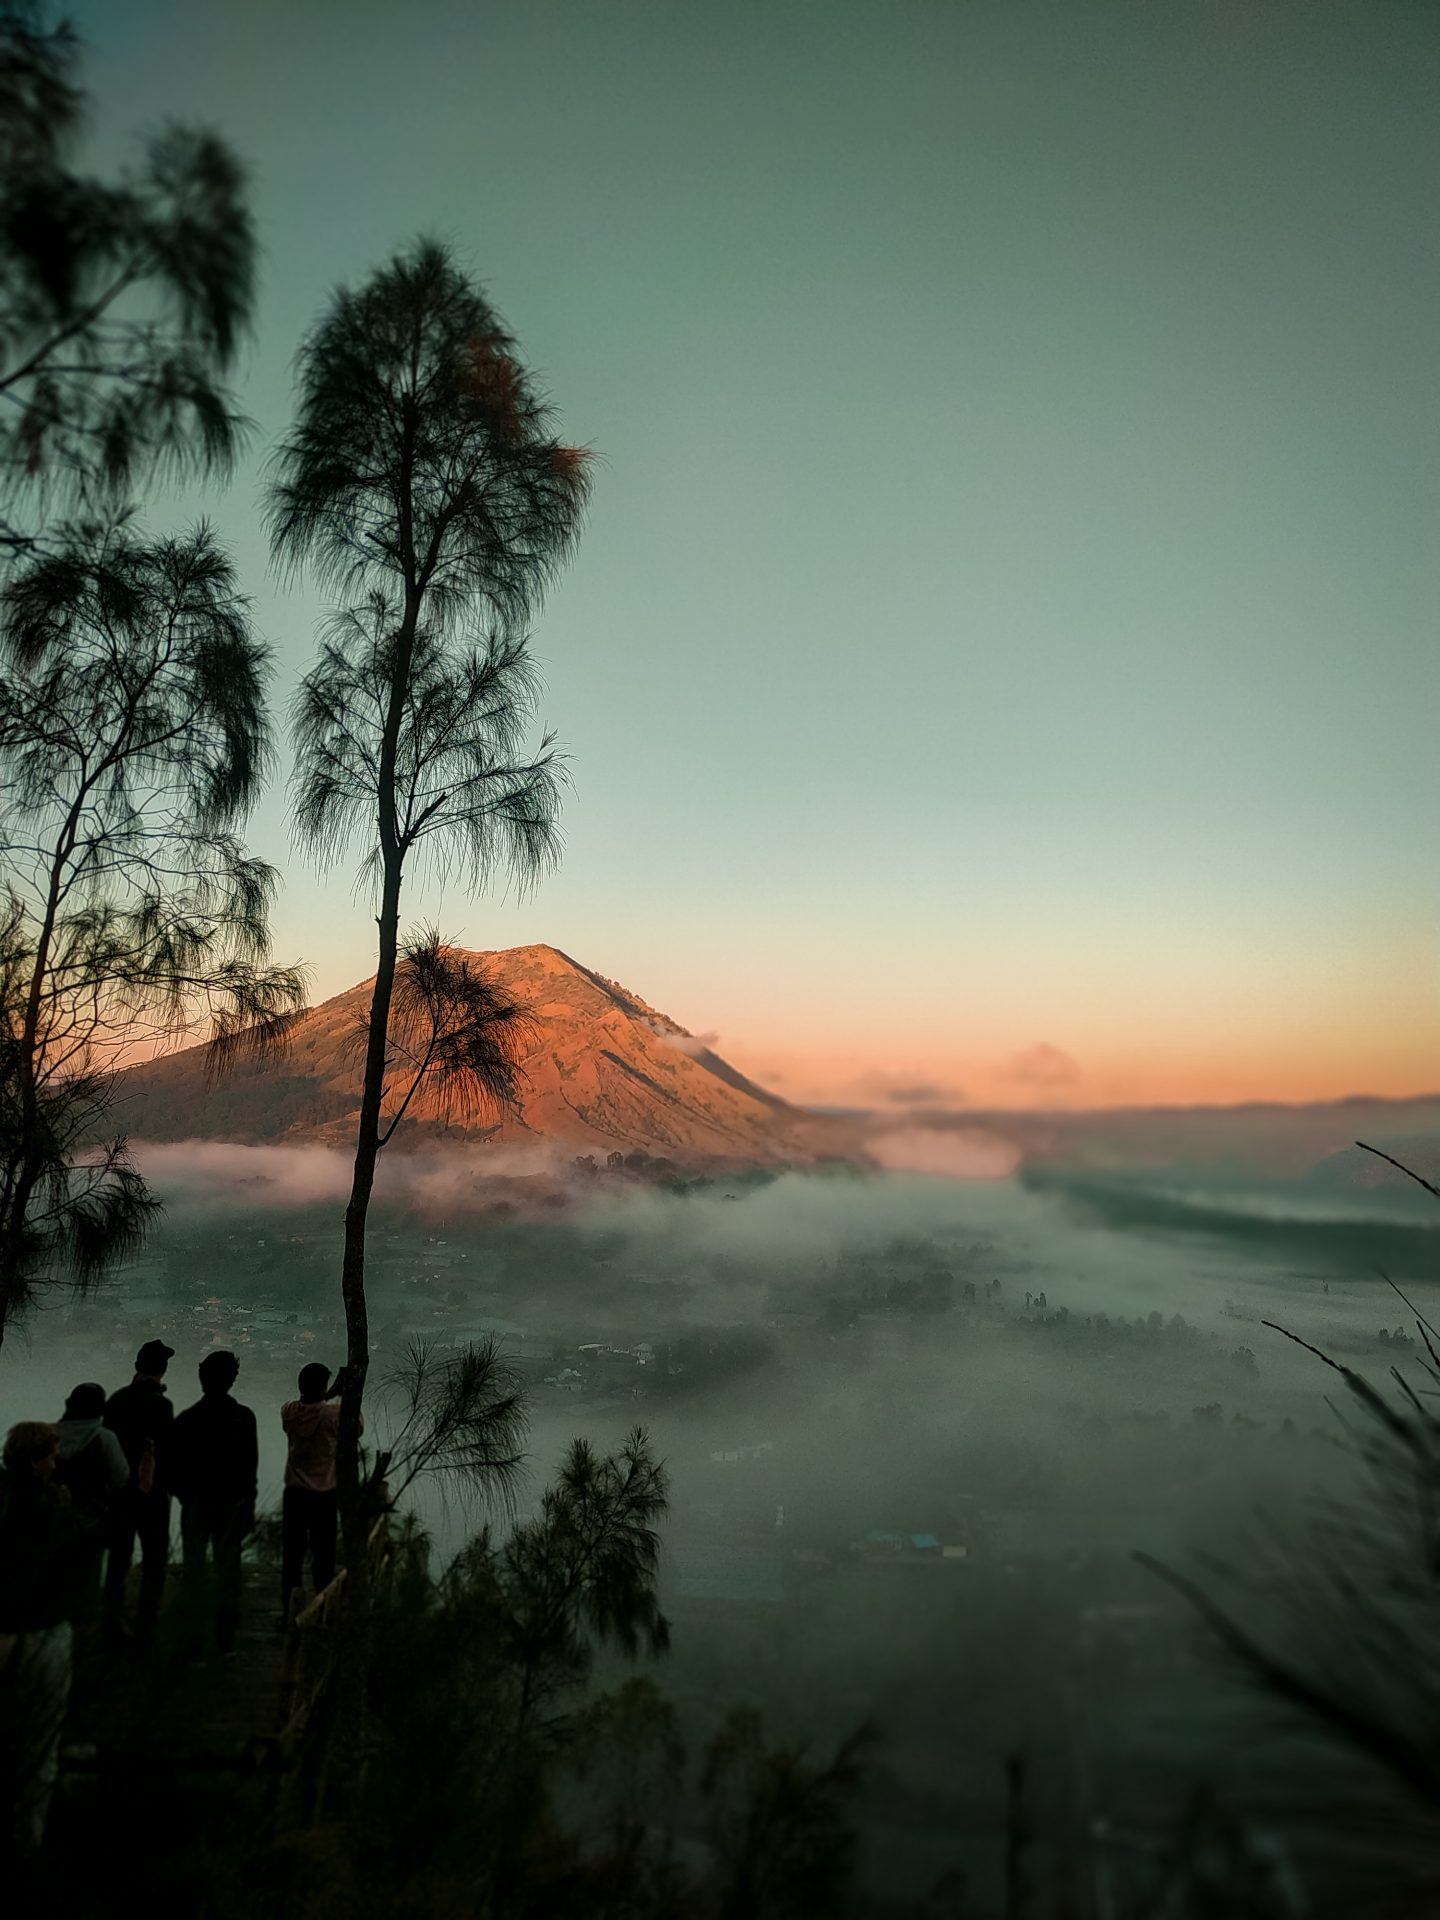 a view over mount batur during sunrise with low clouds and palmtrees